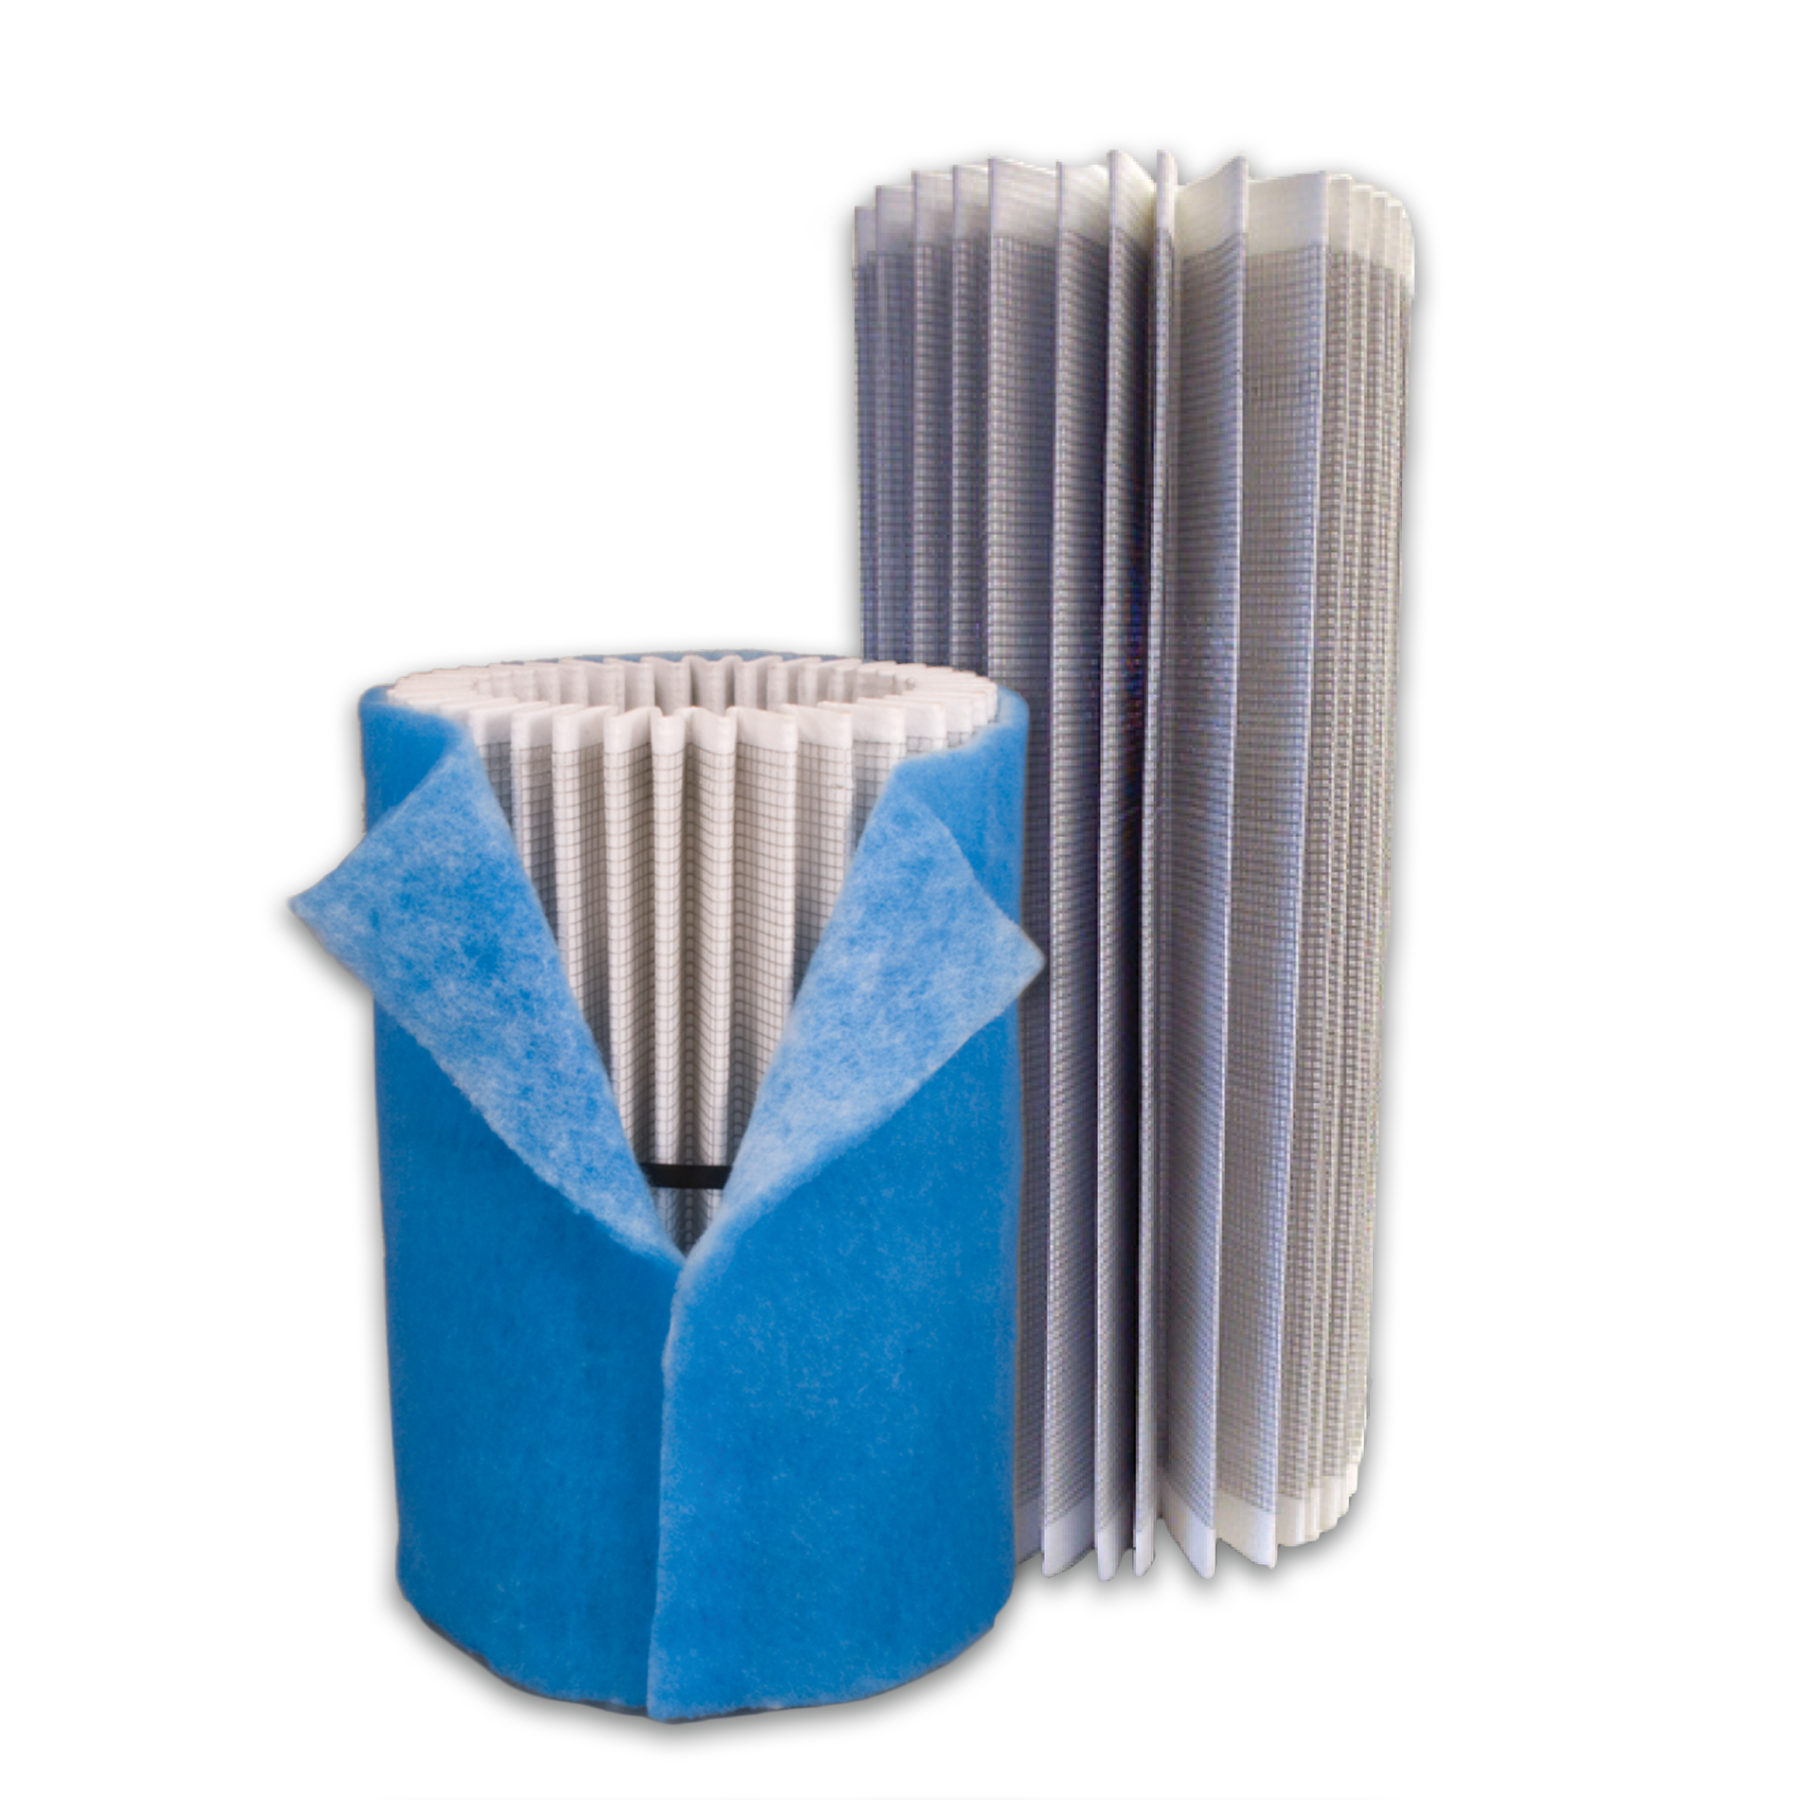 Industrial accordion filters from Sidco Filter to replace Air Maze, Air Refiner, AIRSAN, Allis – Chalmers, Atlas Copco, Chicago CFM, Chicago Pneumatic, Complete, Consler, Cooper, Energy, Endustra, Filter Engineering, Fuller Compressor, Gardner Denver, GE, Hoffman, IFM, Ingersoll – Rand, John Deere, Joy, NAFCO, Nash Engineering, Quincy, Shawndra, Sparks, Sunshine, Worth Comp Co.